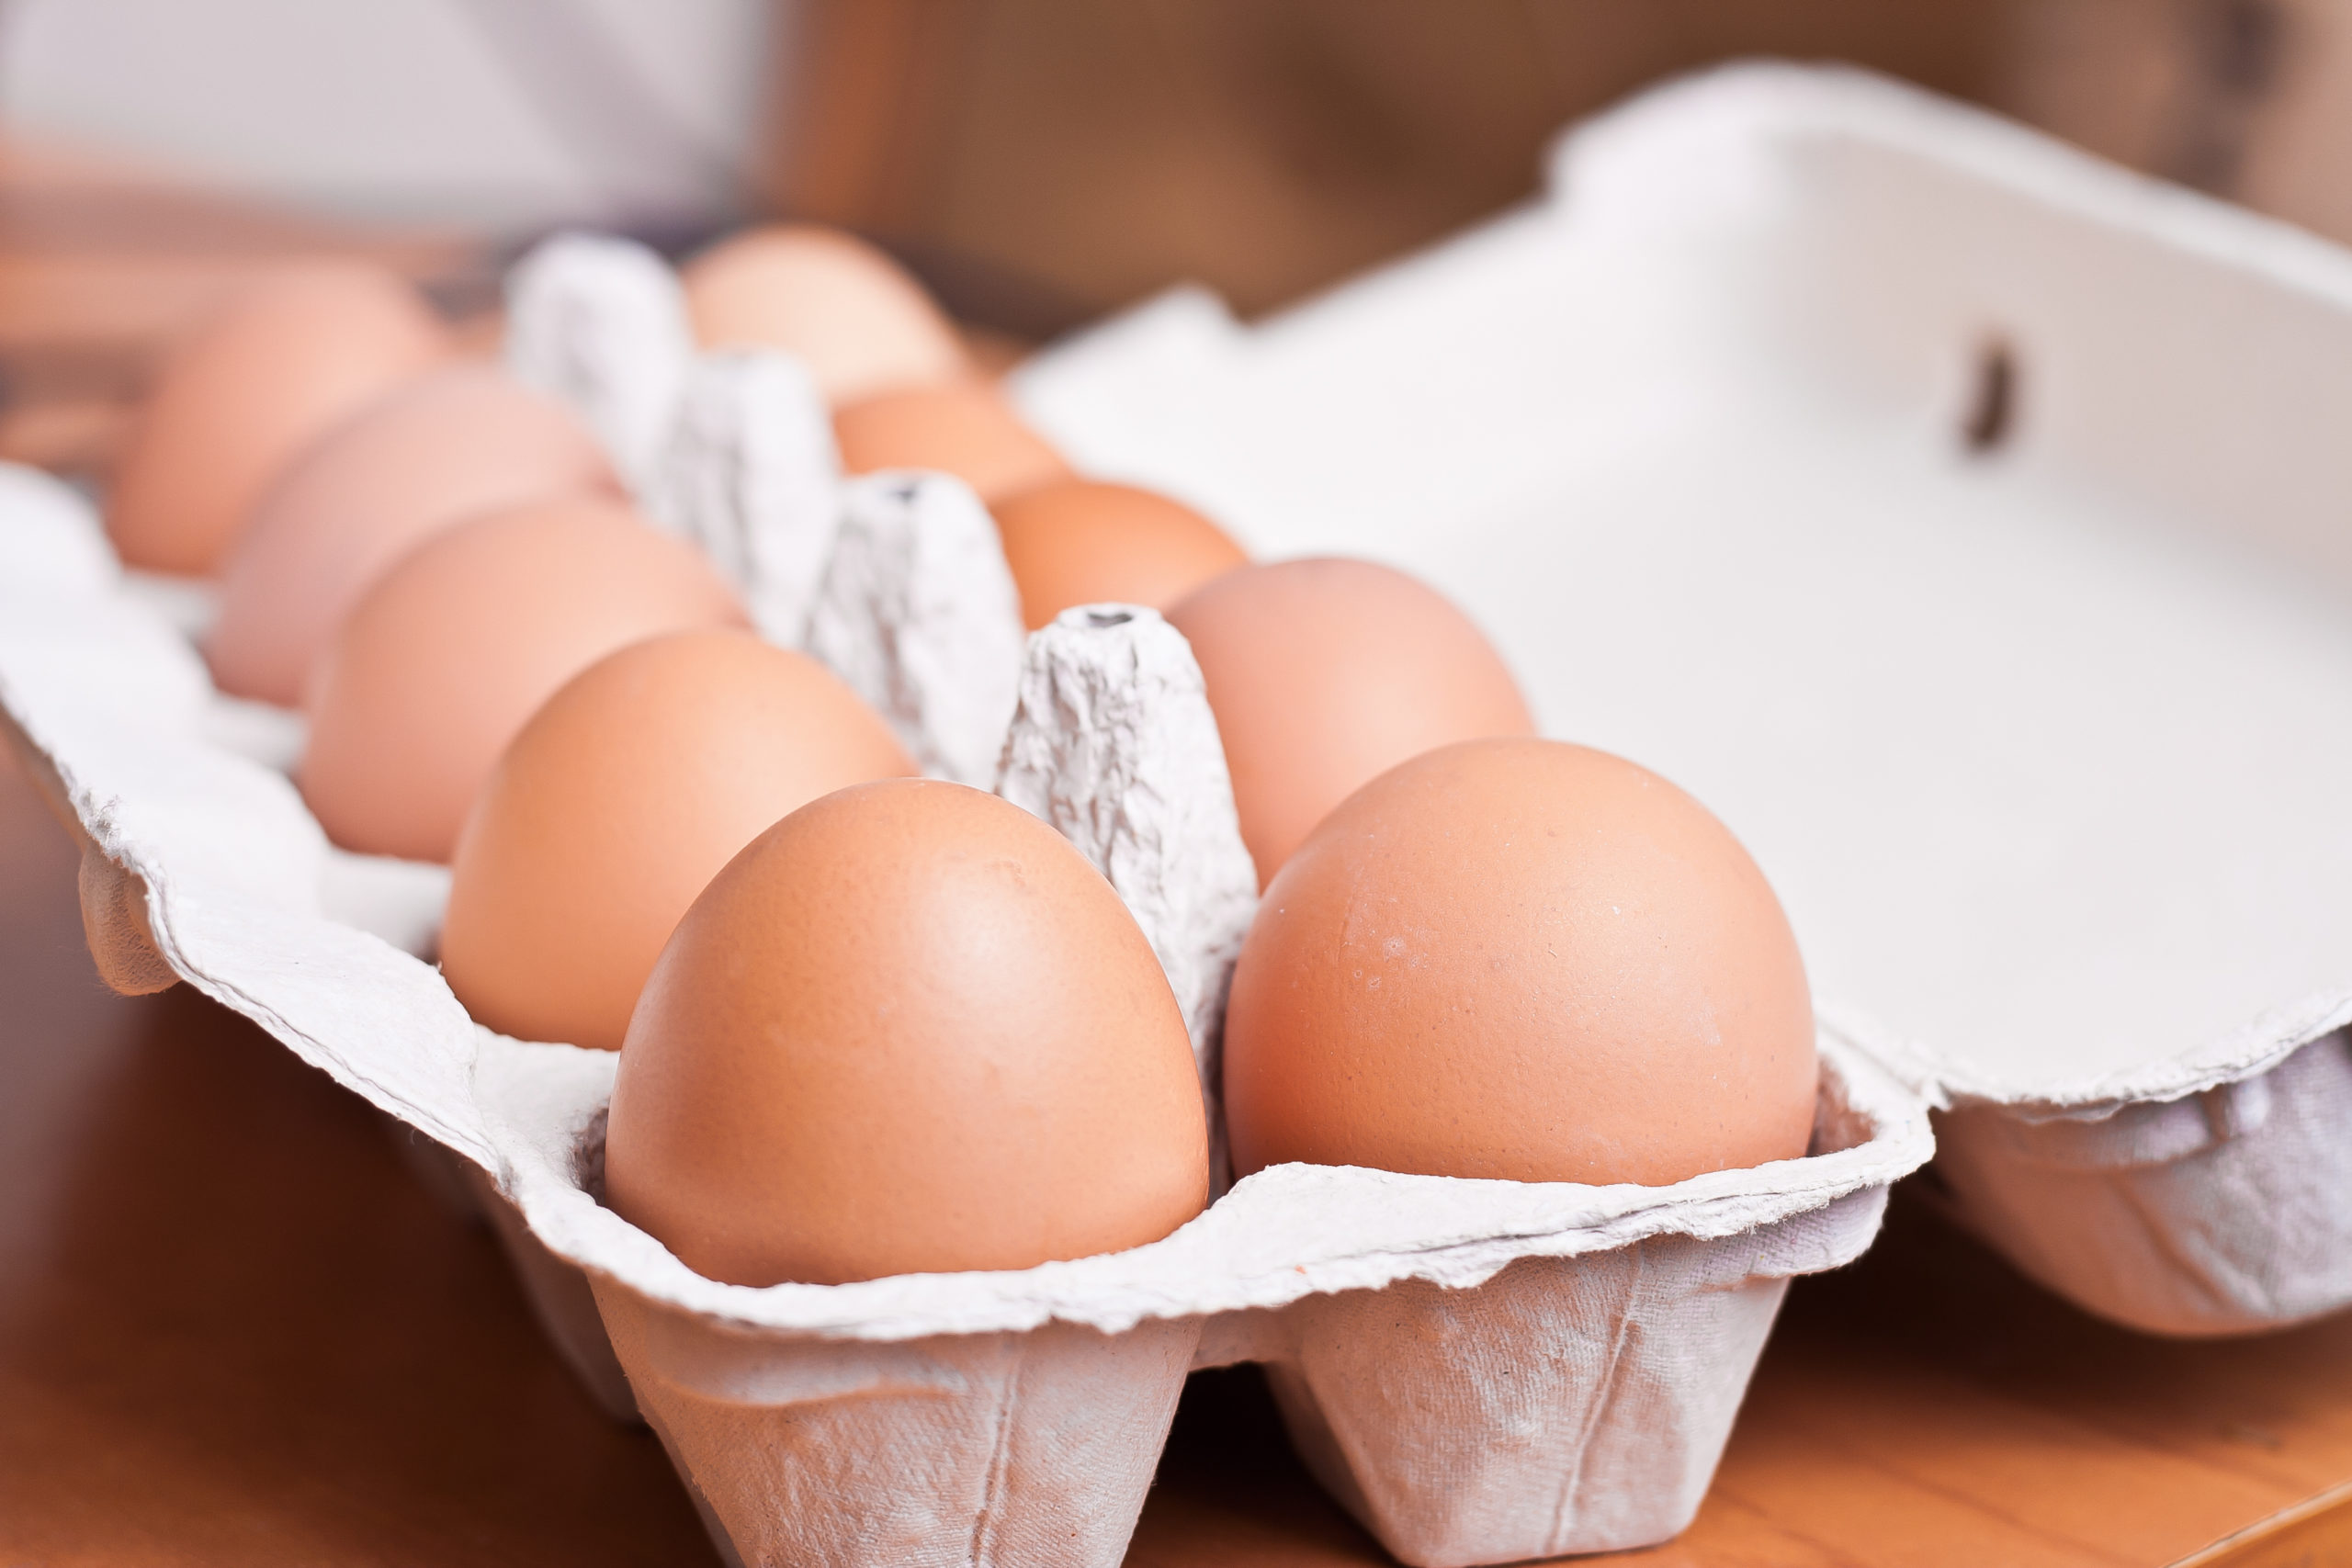 Our Weekly Economic News Roundup and flawed FDA guidelines for eggs